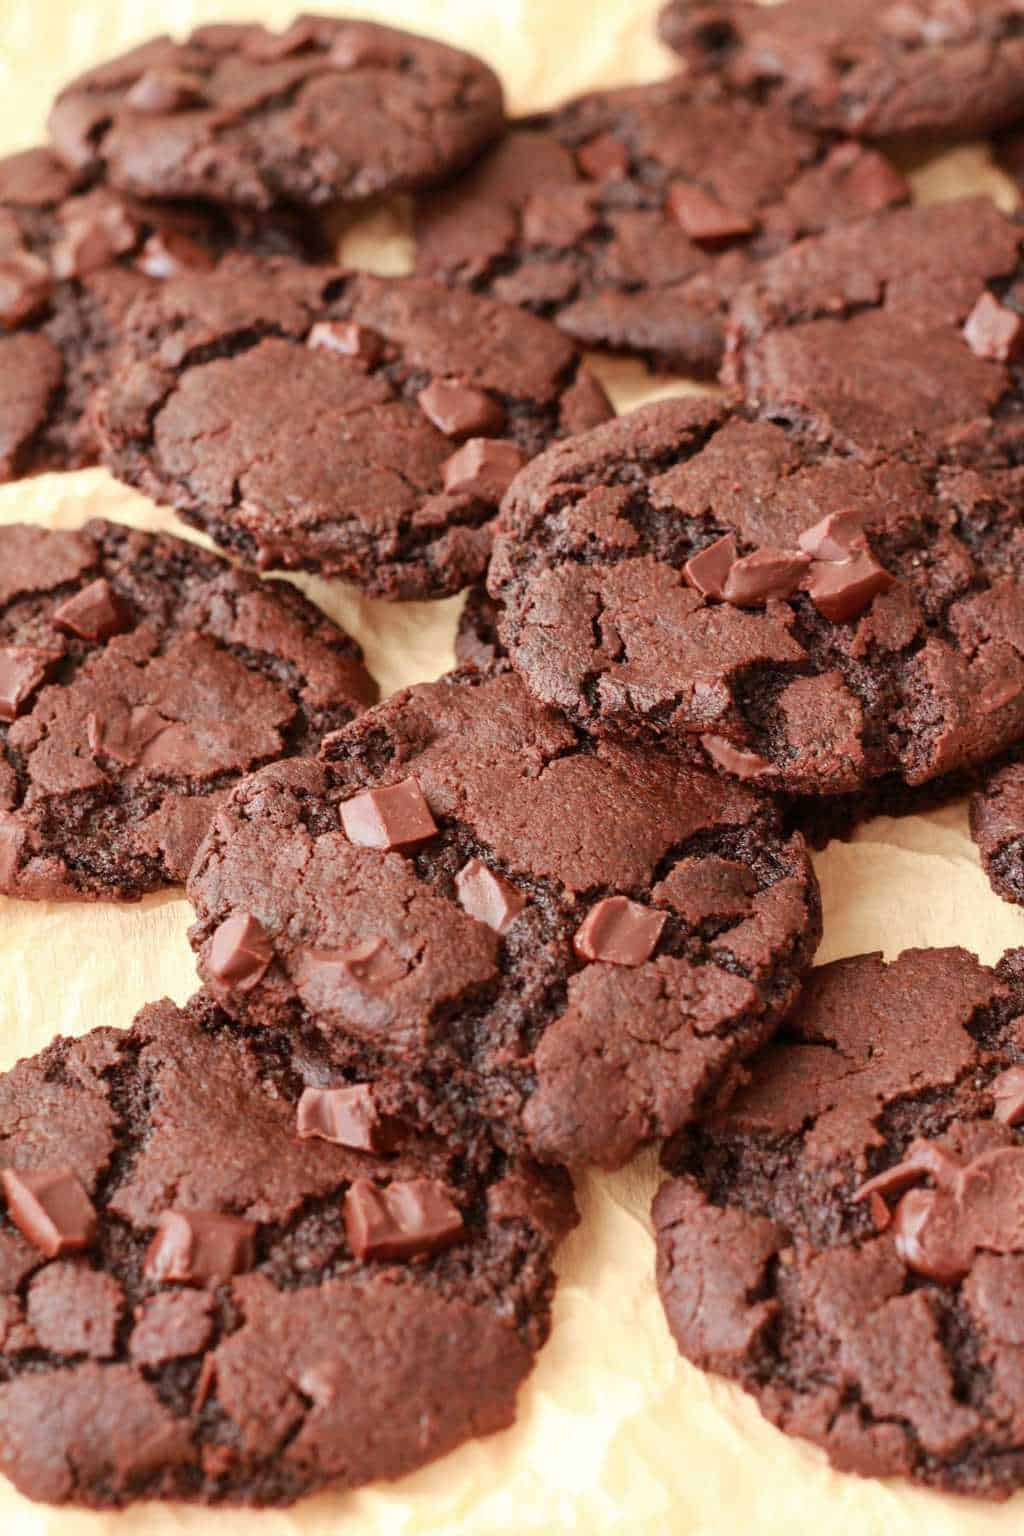 Vegan chocolate cookies on yellow tissue paper.